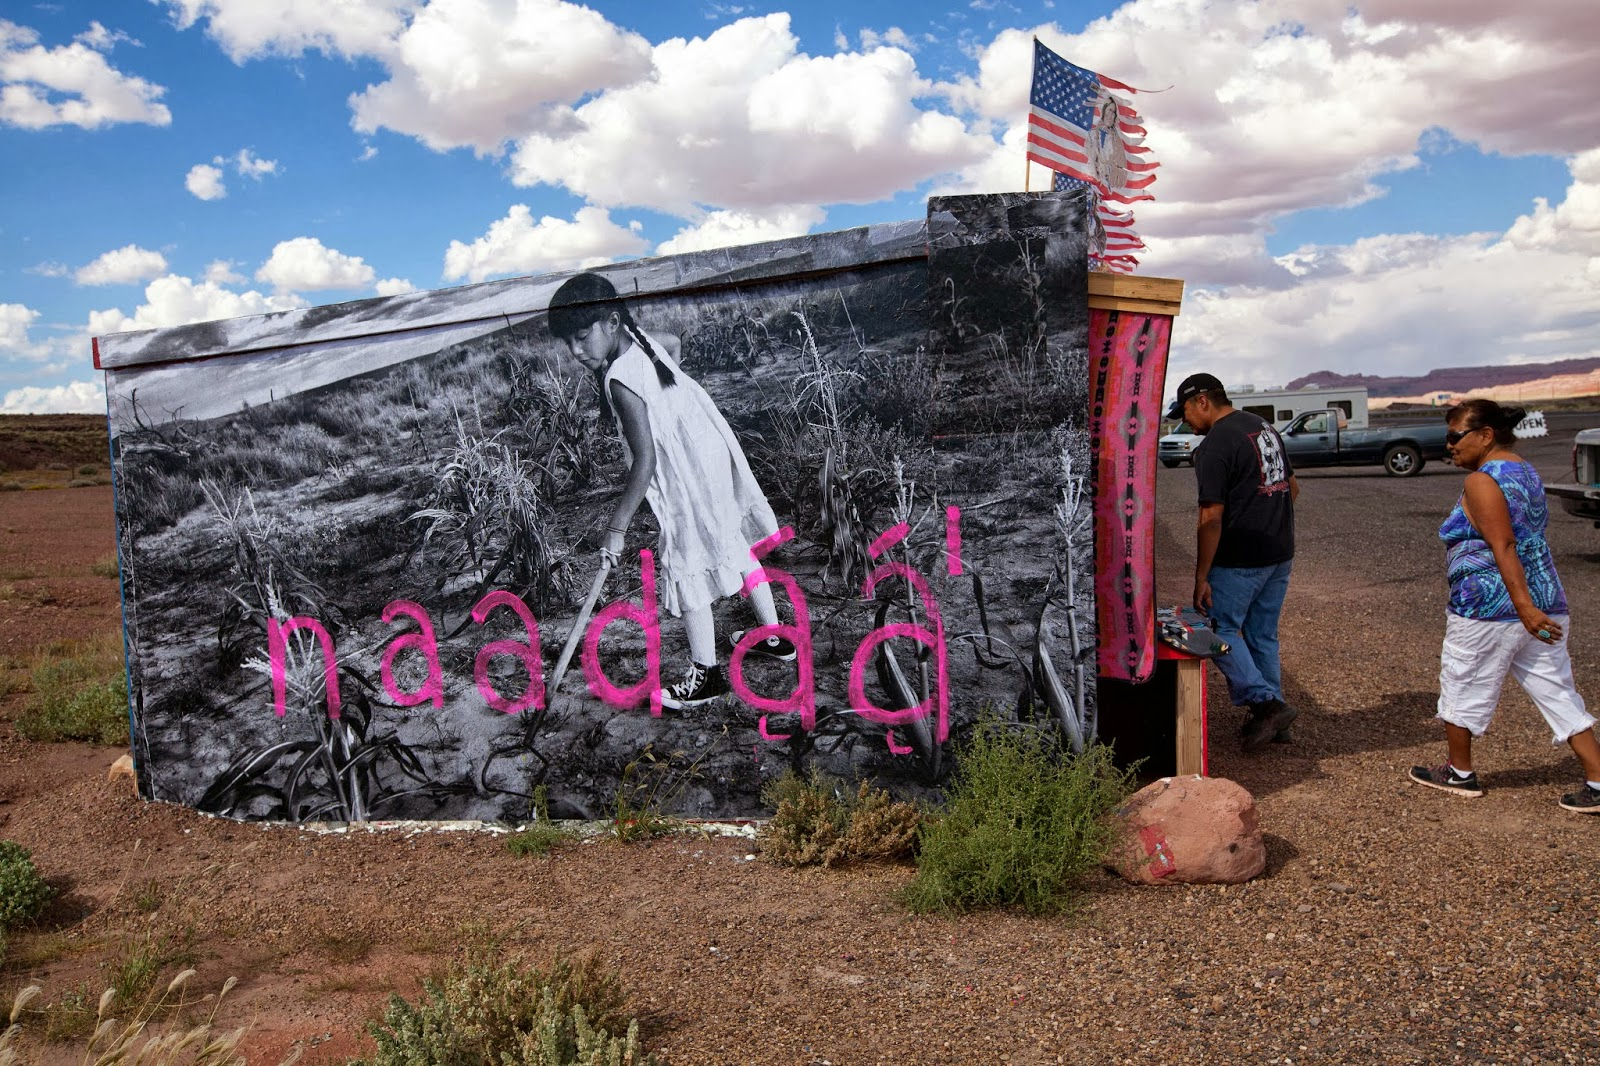 jetsonorama-naa-daa-new-mural-in-arizona-02